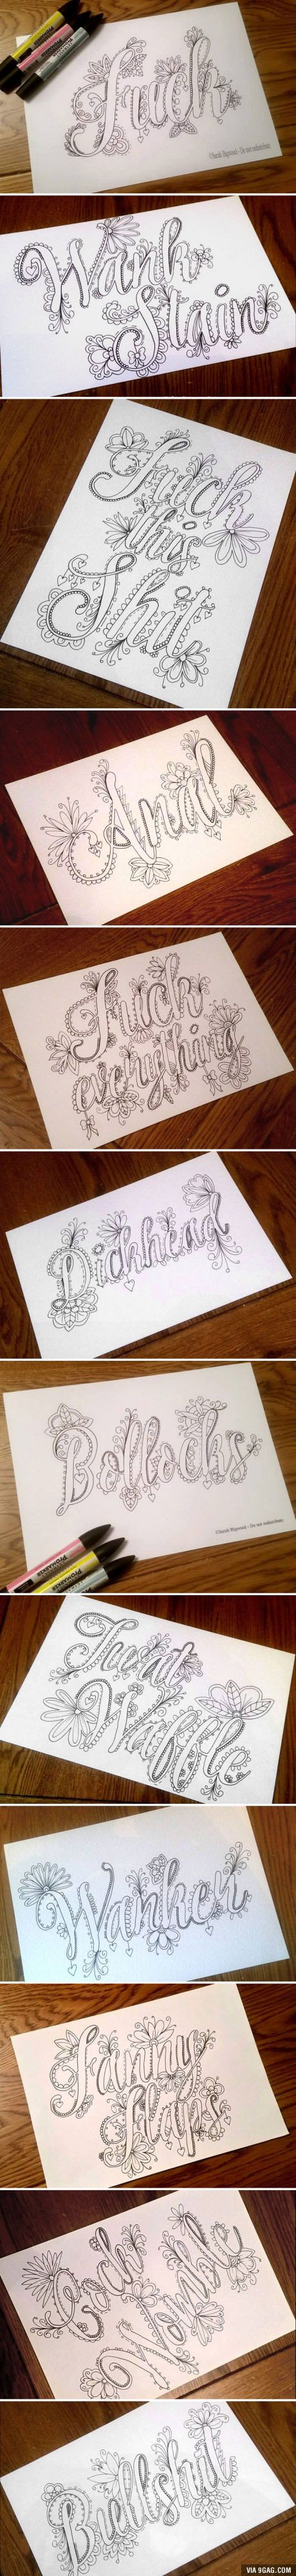 Swear word coloring pages etsy - This Fancy Swear Word Coloring Book Will Stop You From Swearing To Coloring